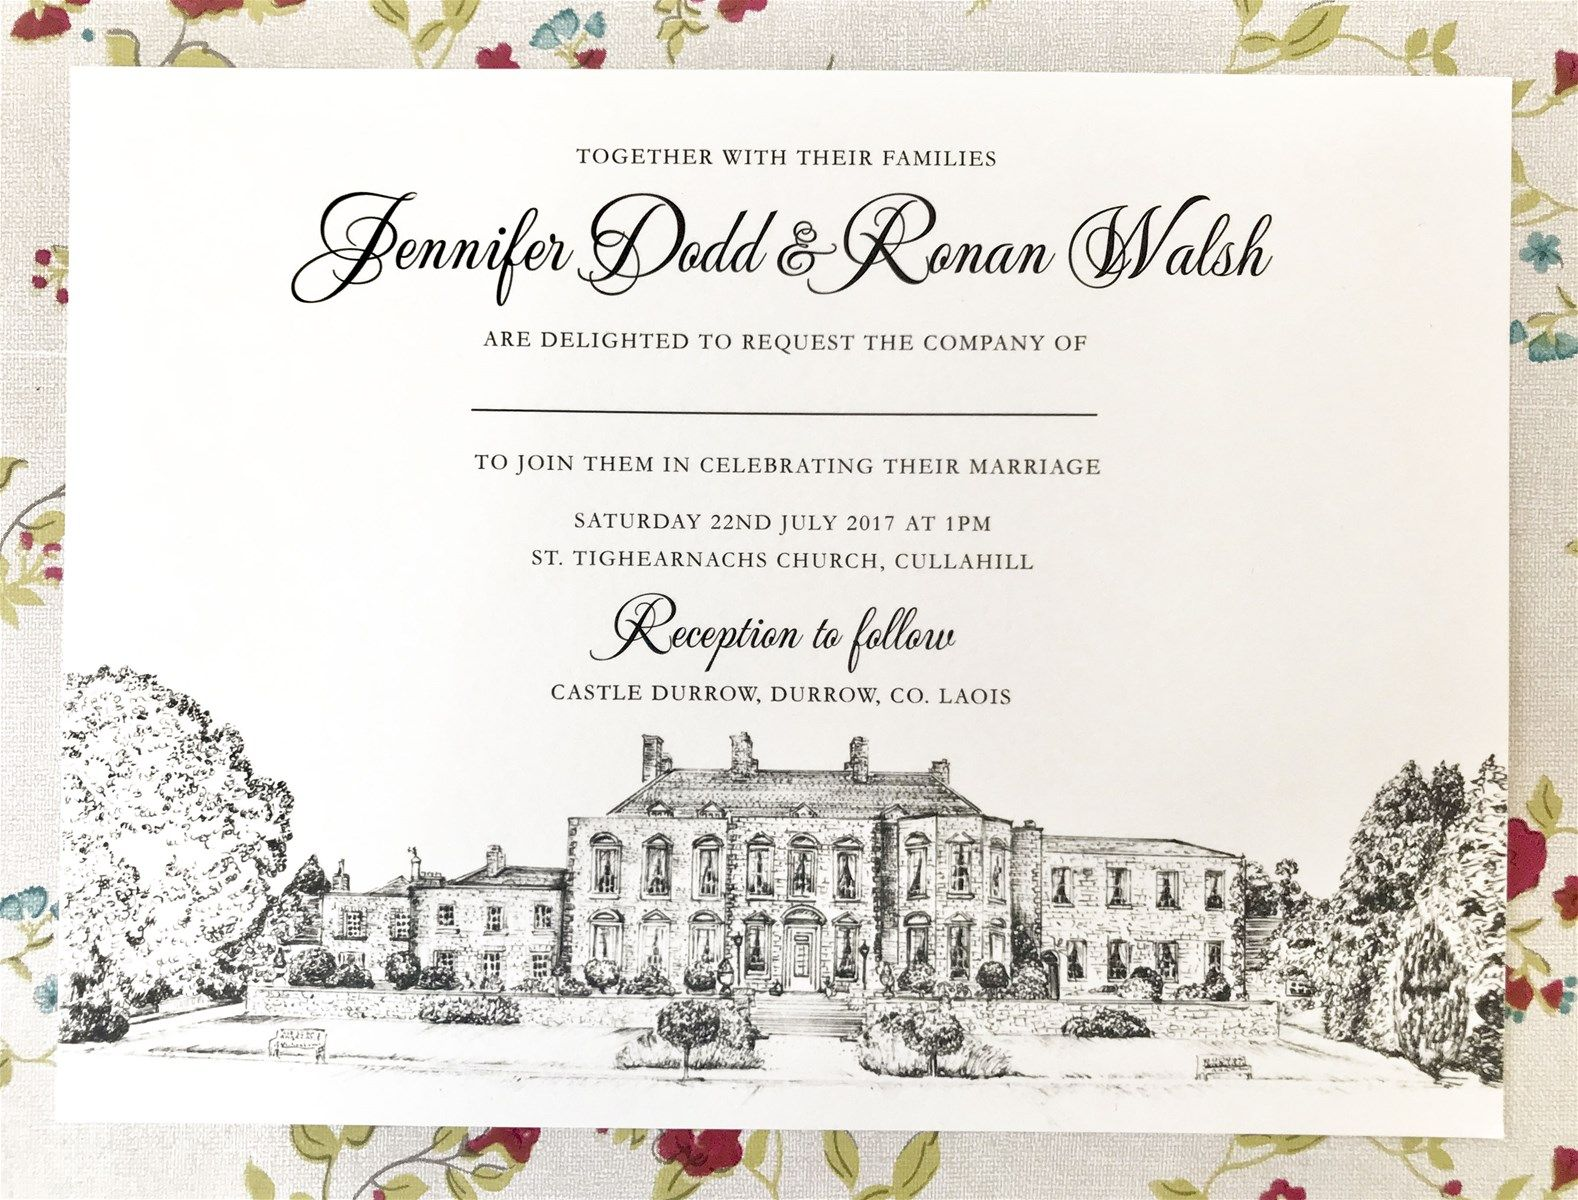 wedding invitation, venue illustration, irish wedding venue, castle ...